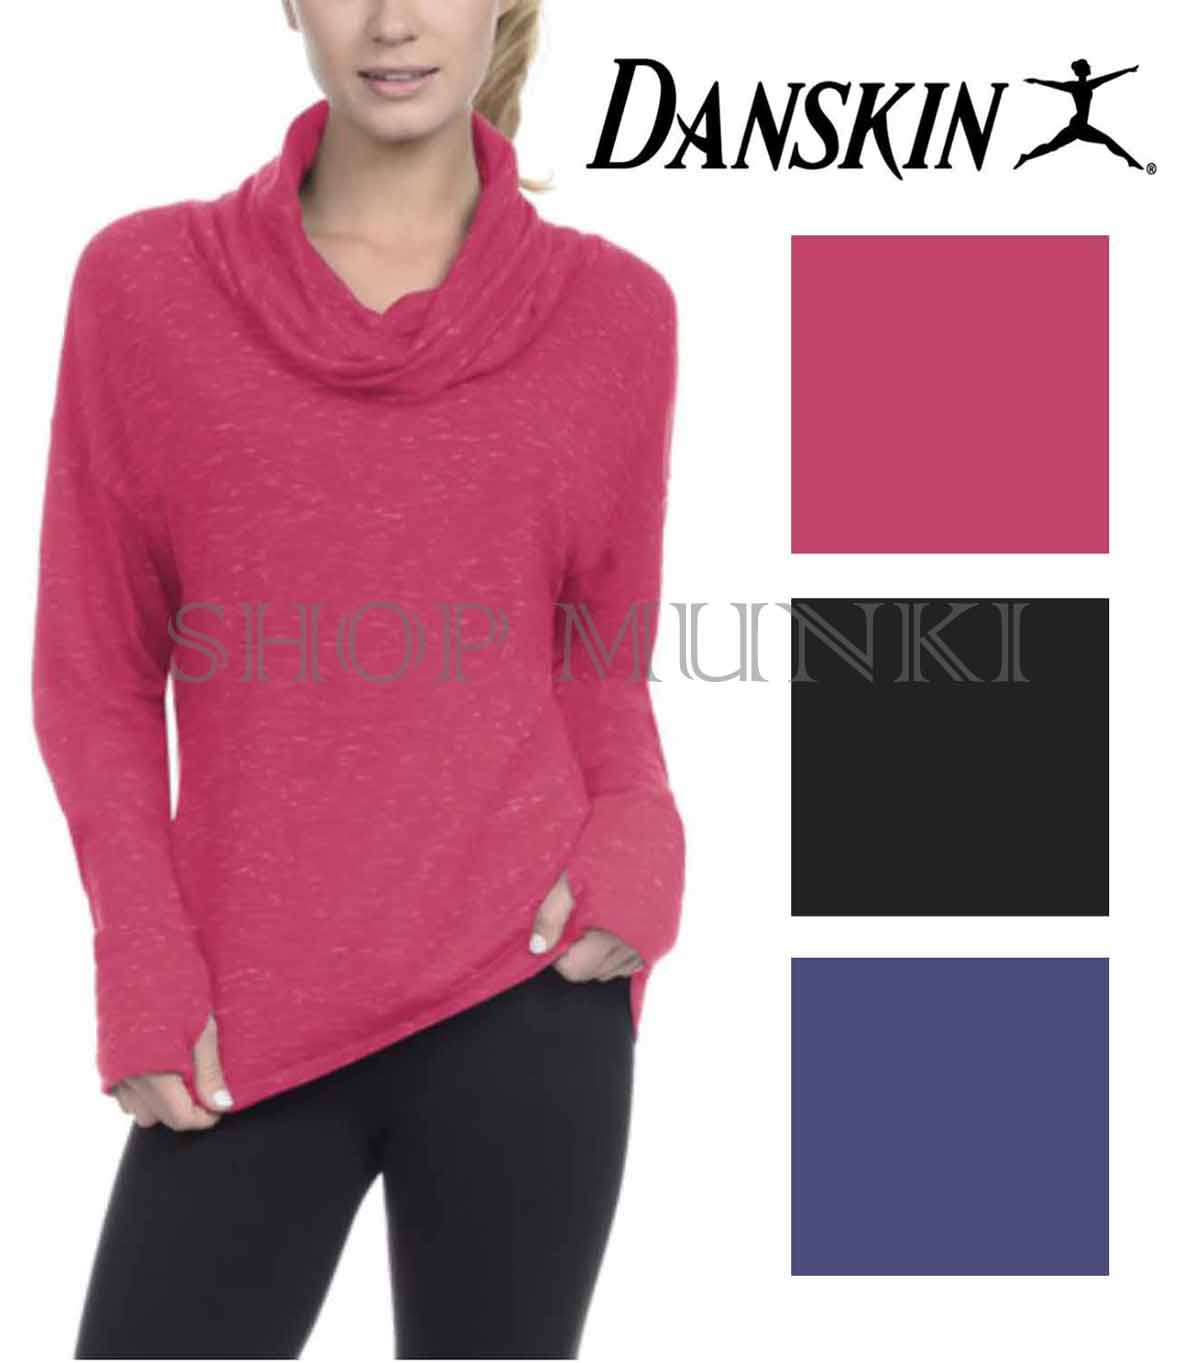 Danksin Women/'s French Terry Relaxed Fit Cowl Neck Pullover Top with Thumbholes